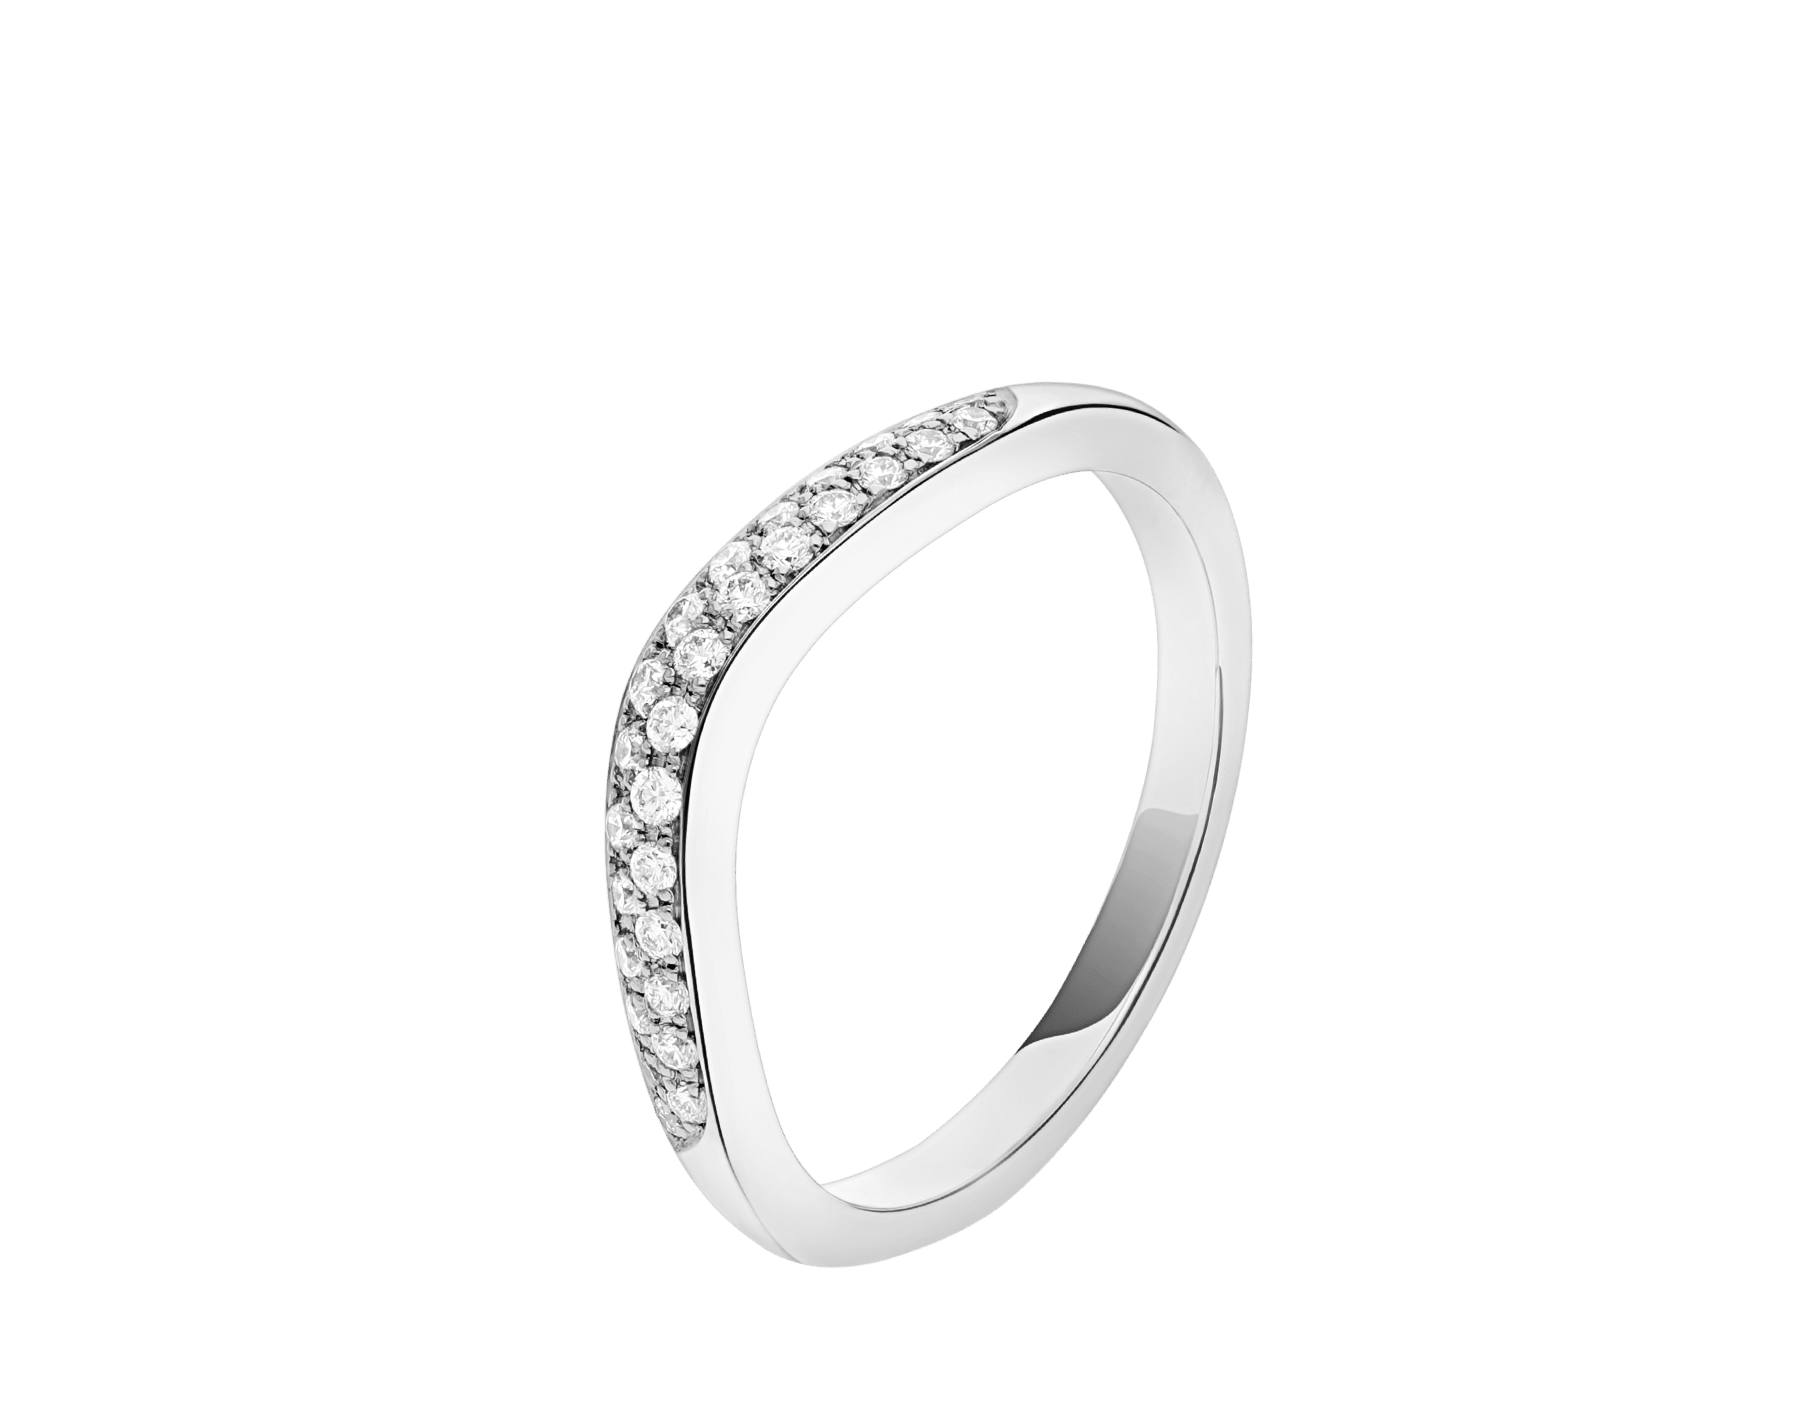 Corona platinum wedding band set with pavé diamonds AN856079 image 1